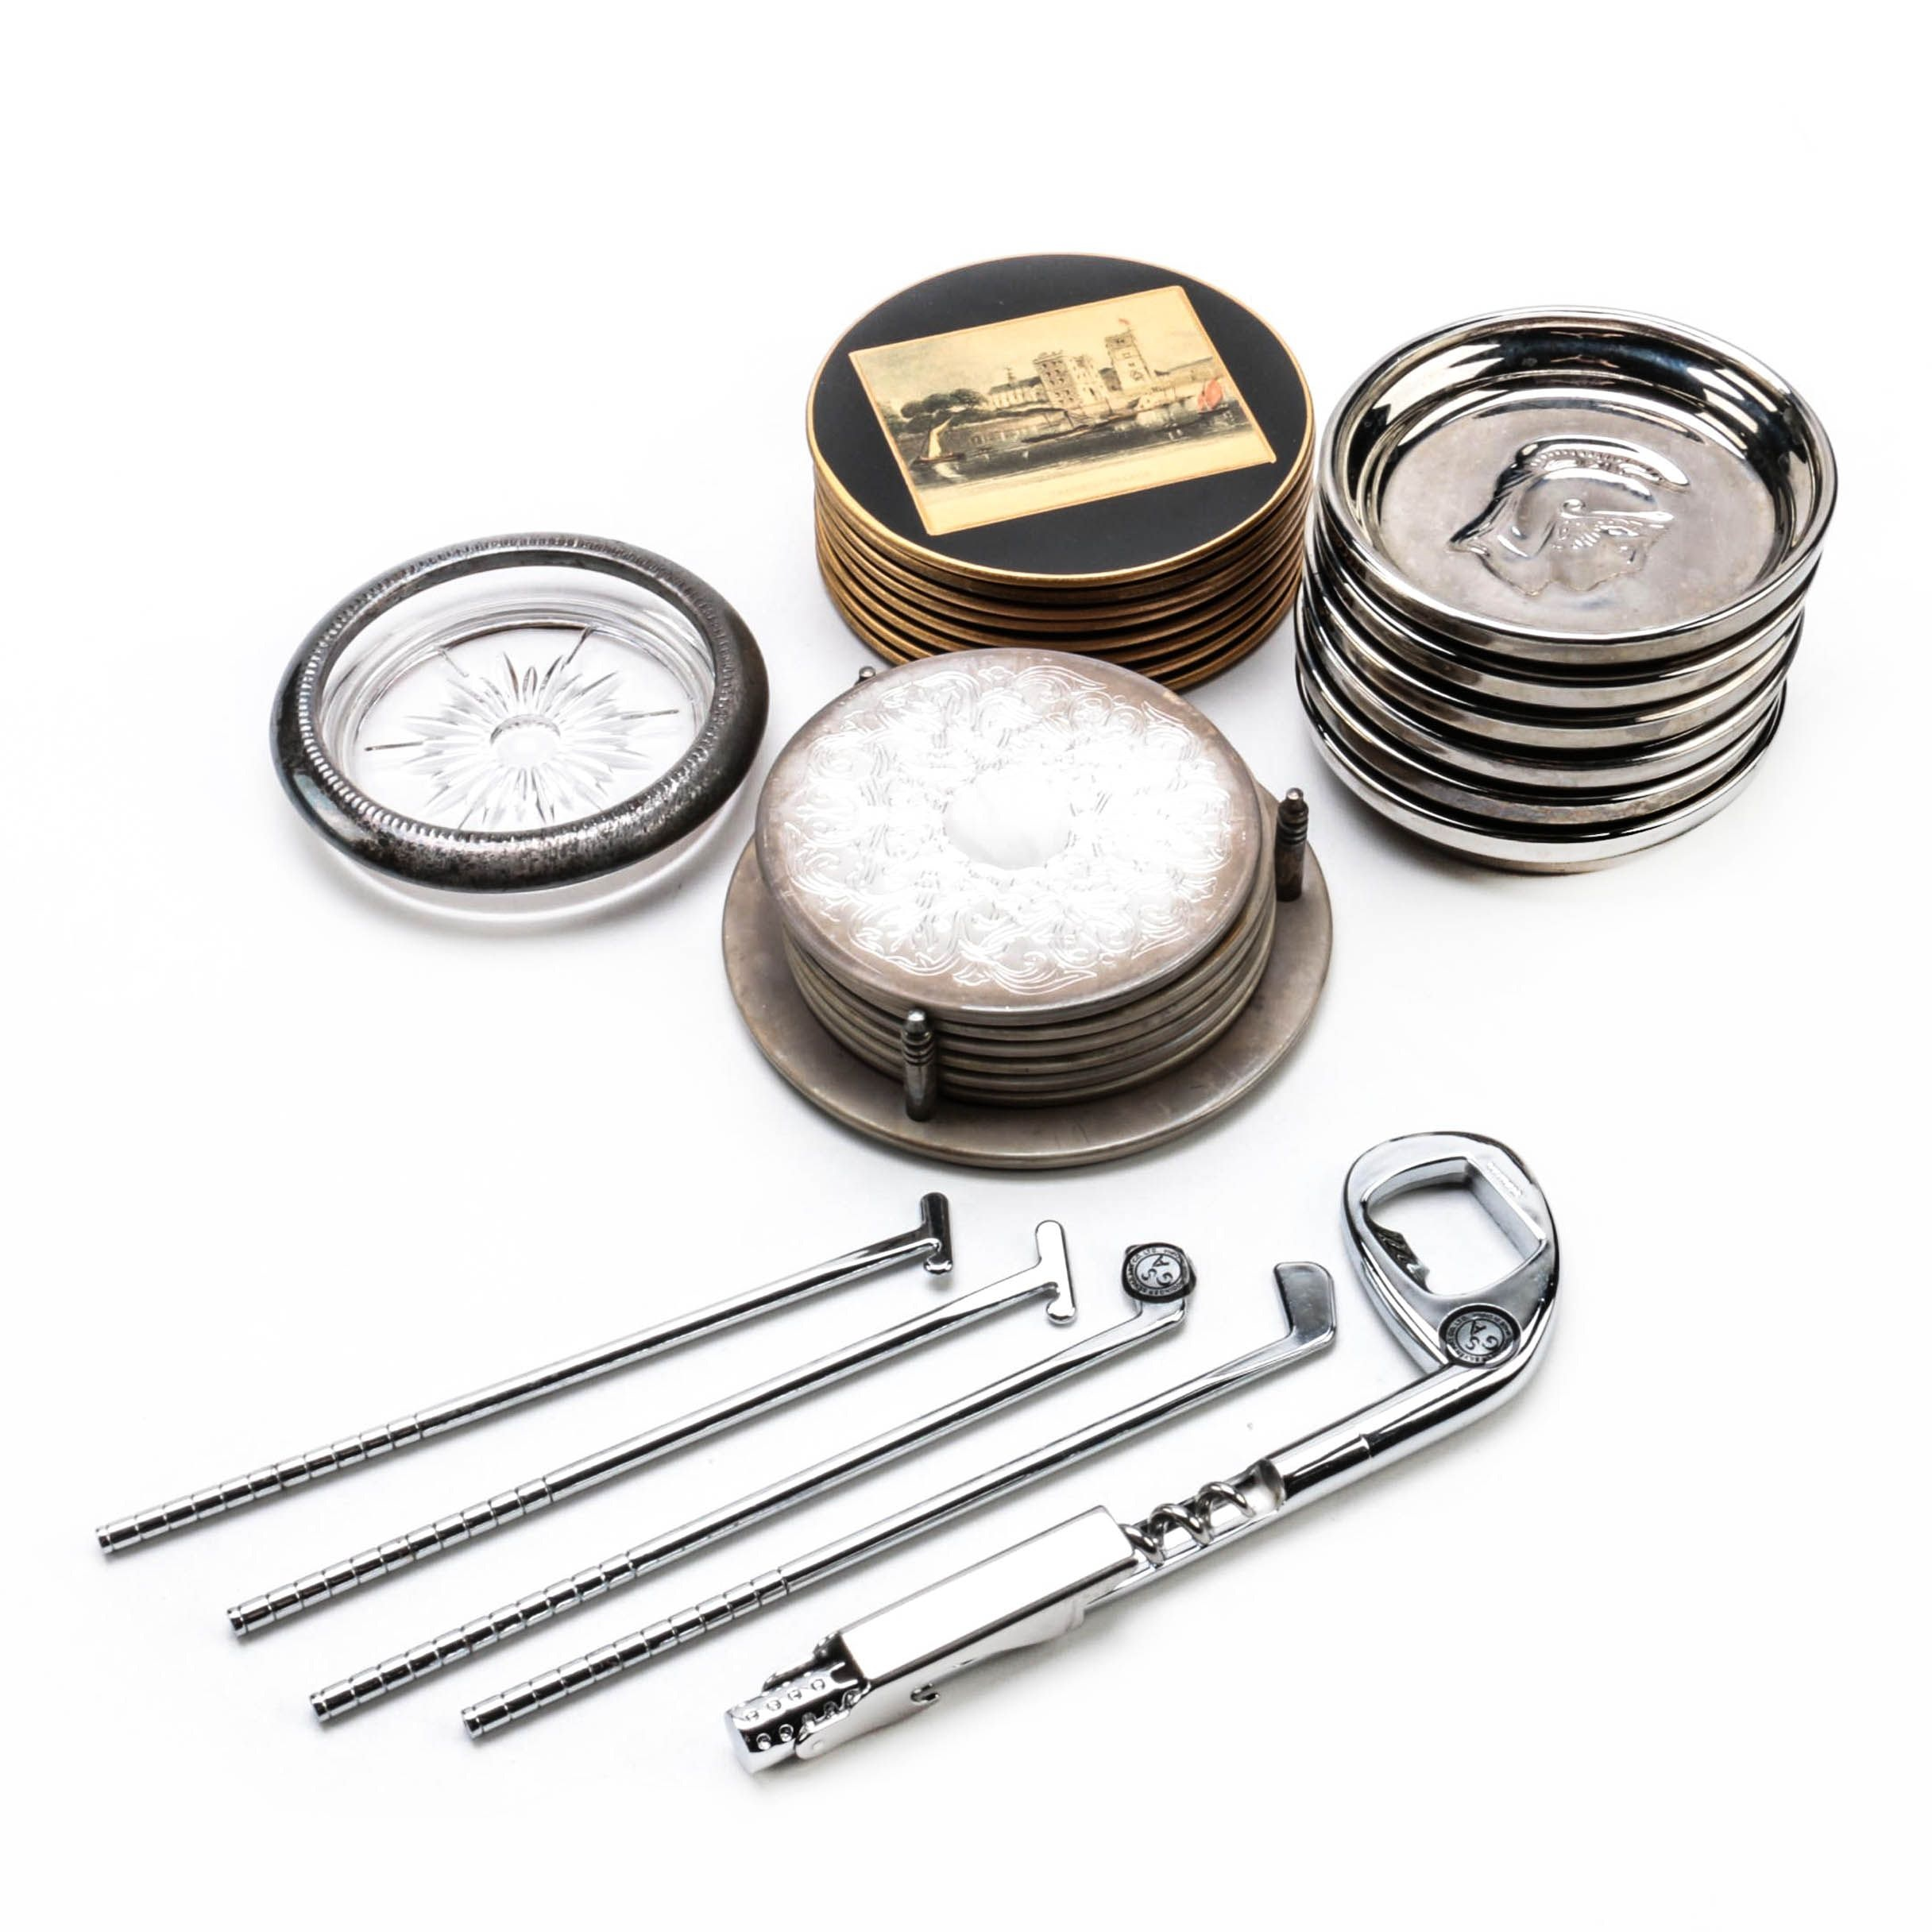 Godinger Stainless Steel Bar Tools with Silver Plate Coasters